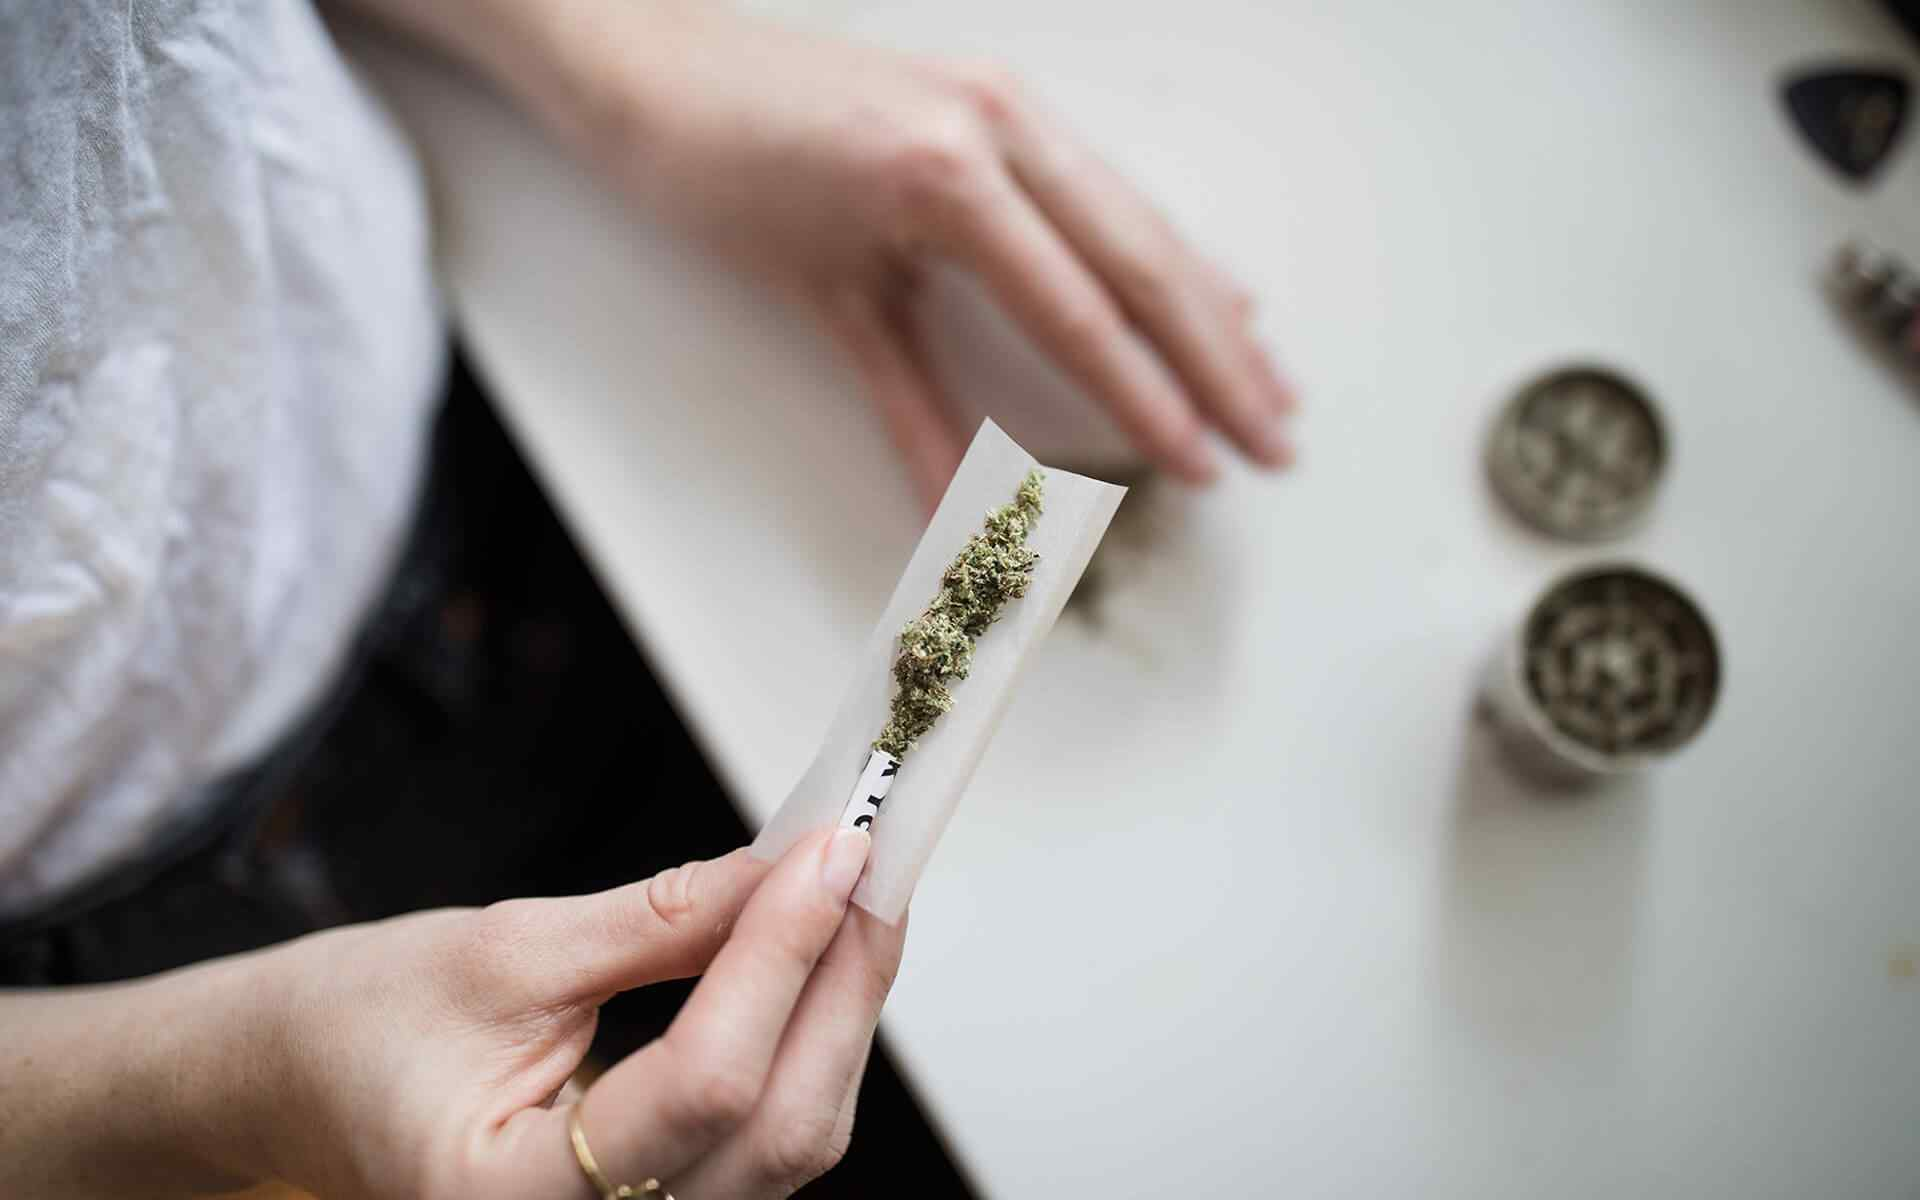 Options For a Cannabis Education in All Countries